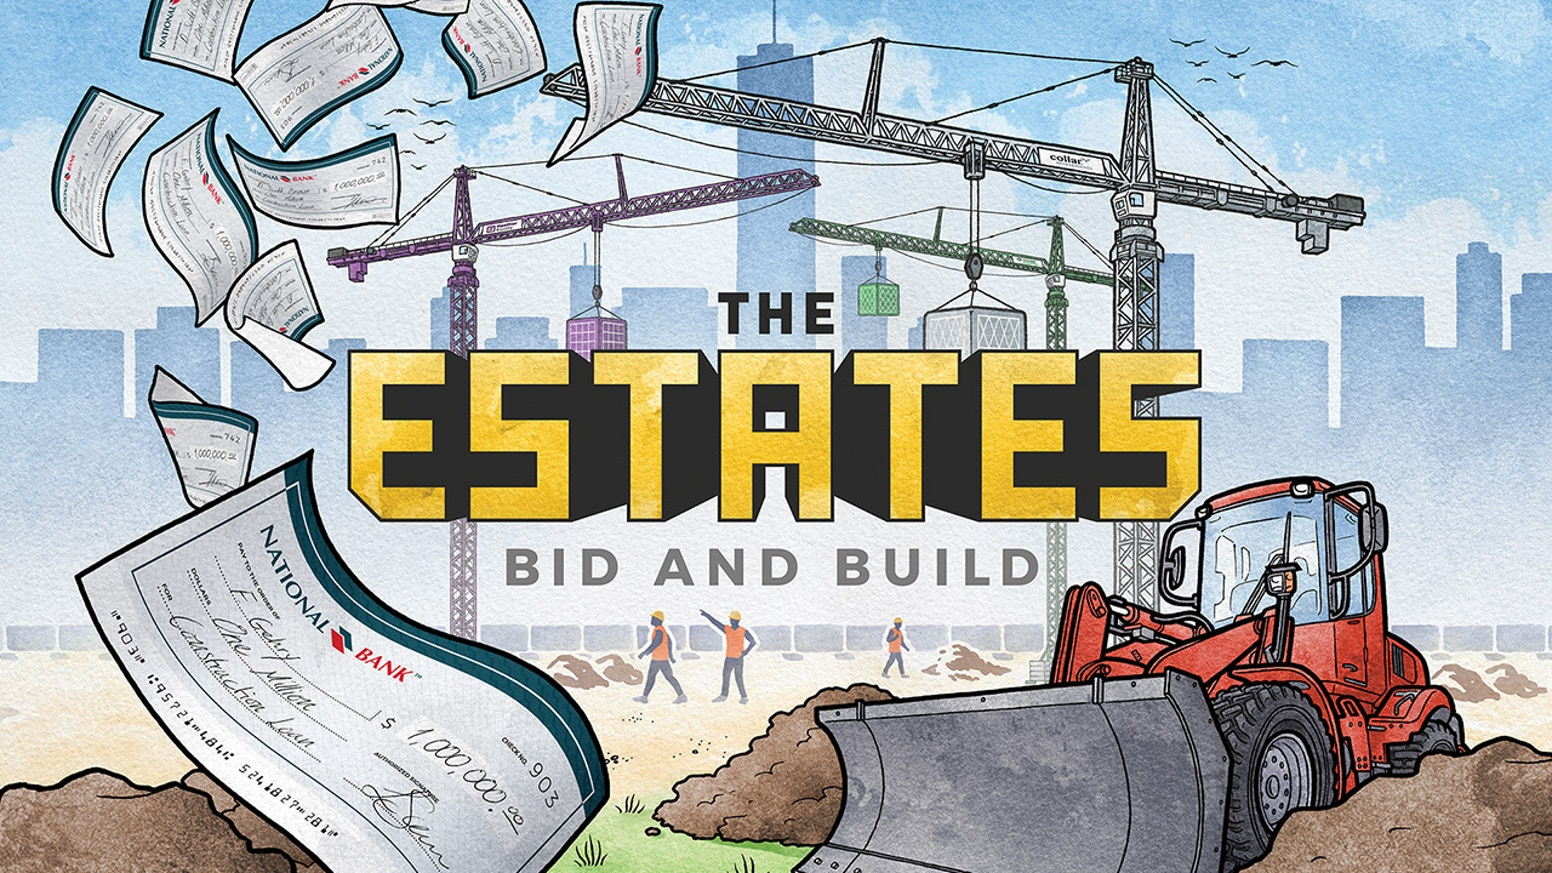 Capstone Games presents The Estates, a city-building board game from our Simply Complex line